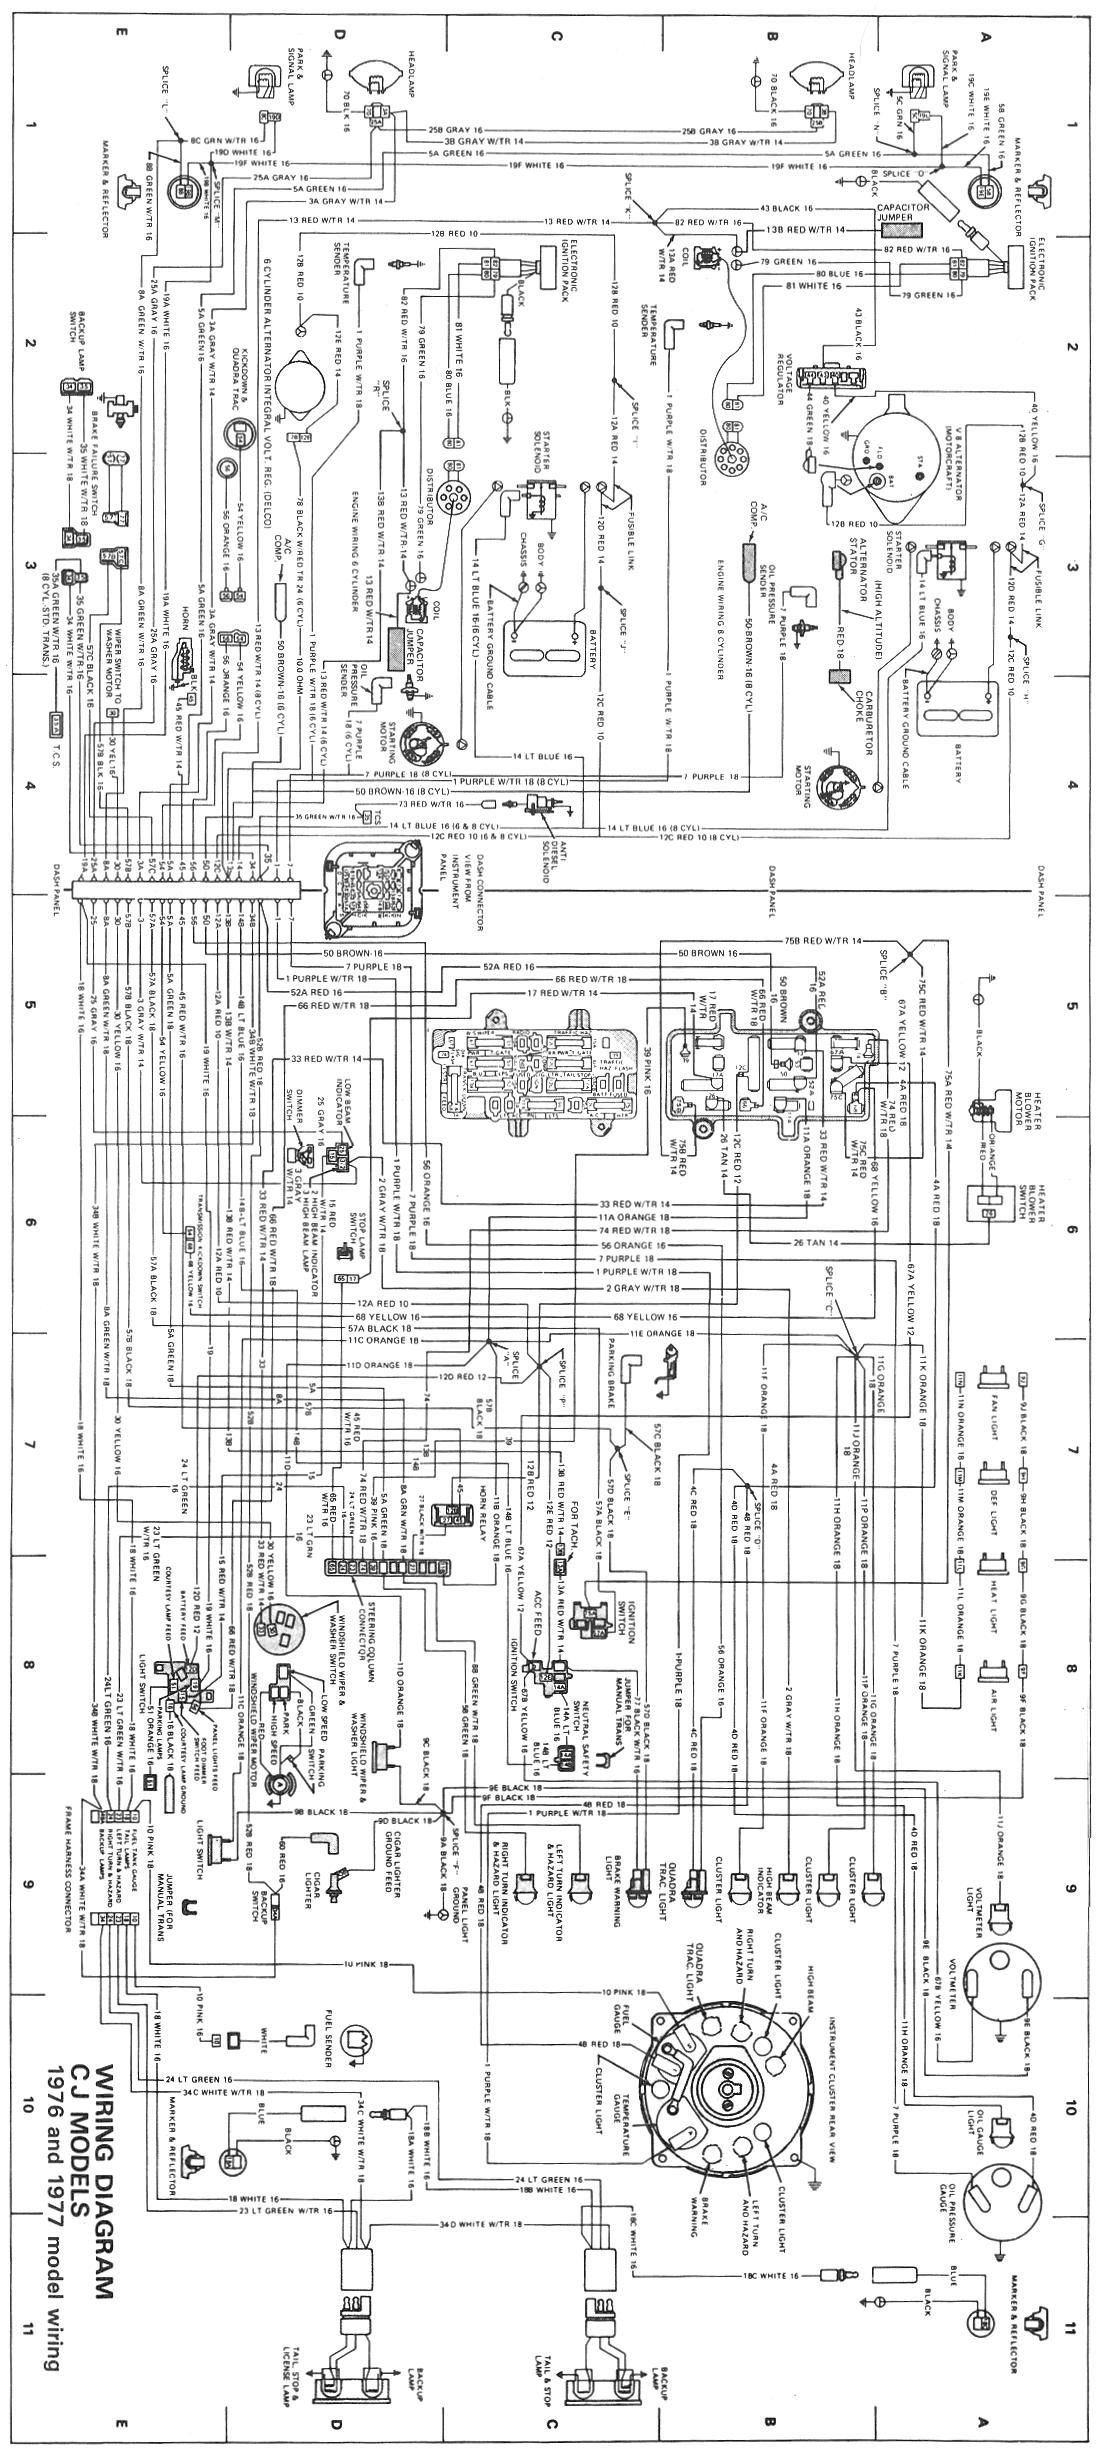 jeep wiring diagrams 1976 and 1977 cj jeep wiring pinterest 1986 Jeep CJ7 Wiring jeep wiring diagrams 1976 and 1977 cj